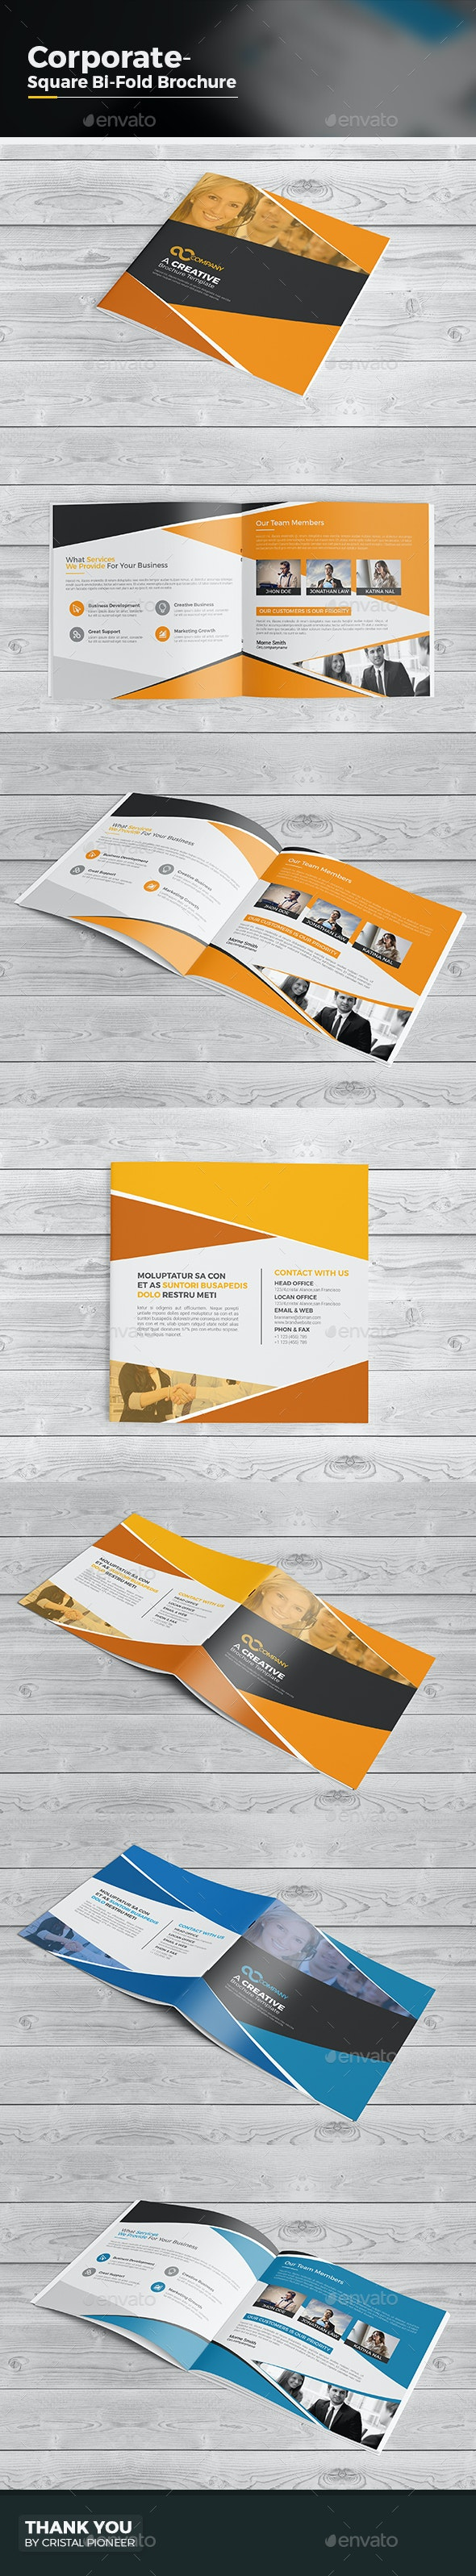 Square Bi Fold Brochure Template - Corporate Brochures